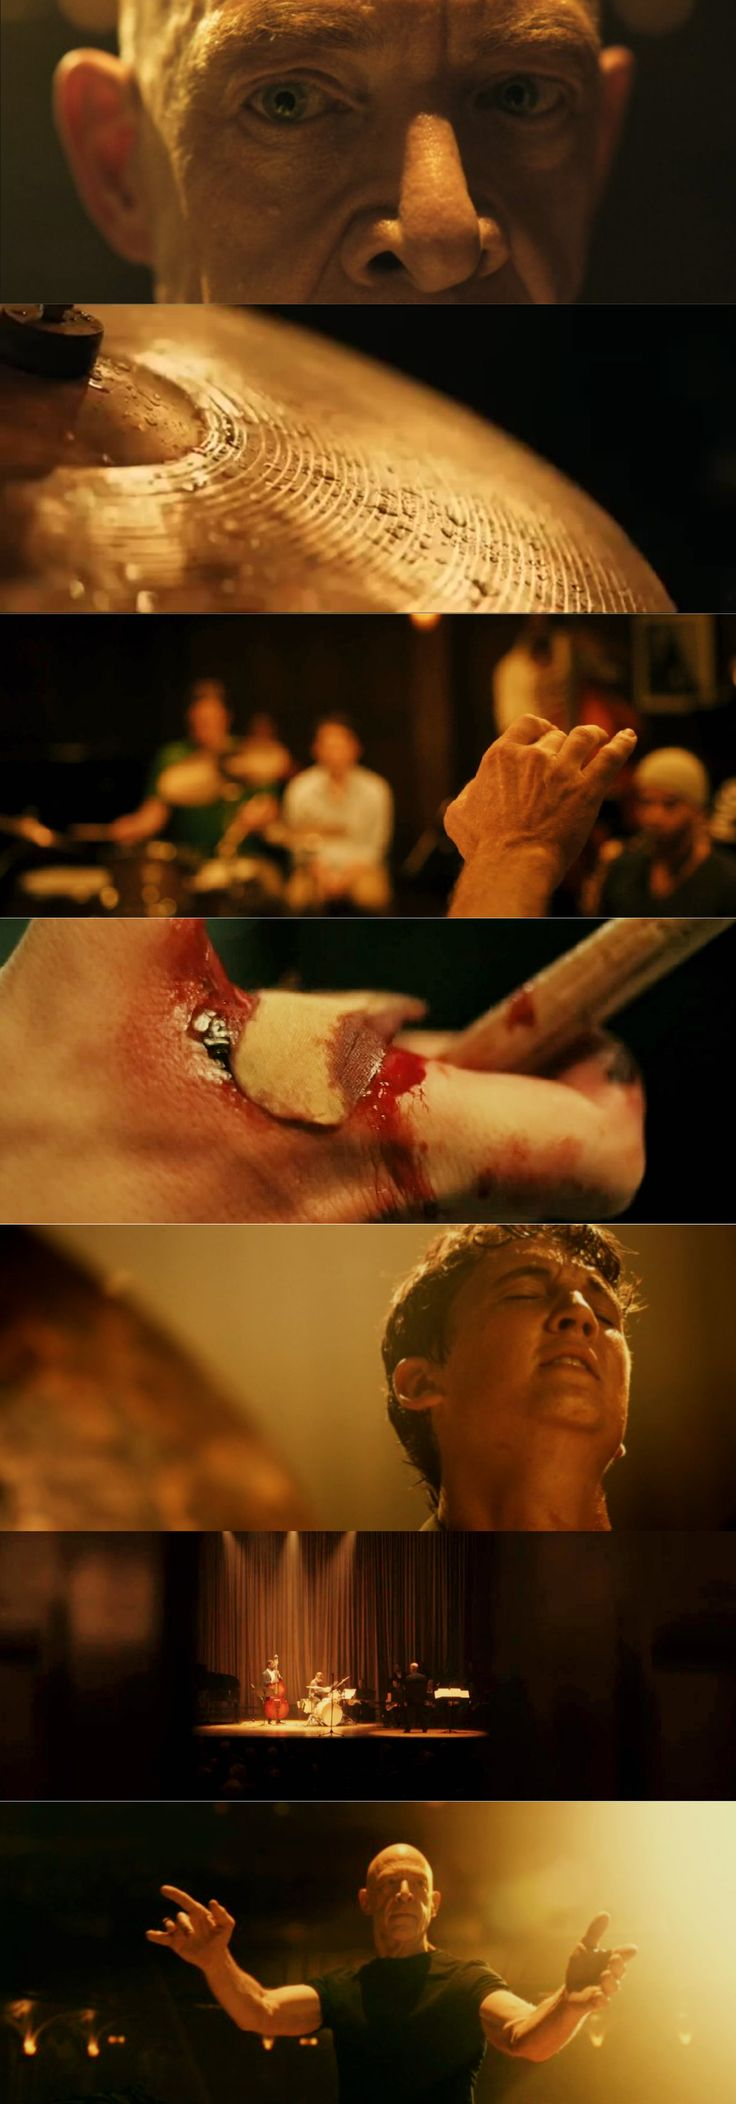 Whiplash / Golds (2014), d. Damien Chazelle, d.p. Sharone Meir. A taut and tense drama with great performances